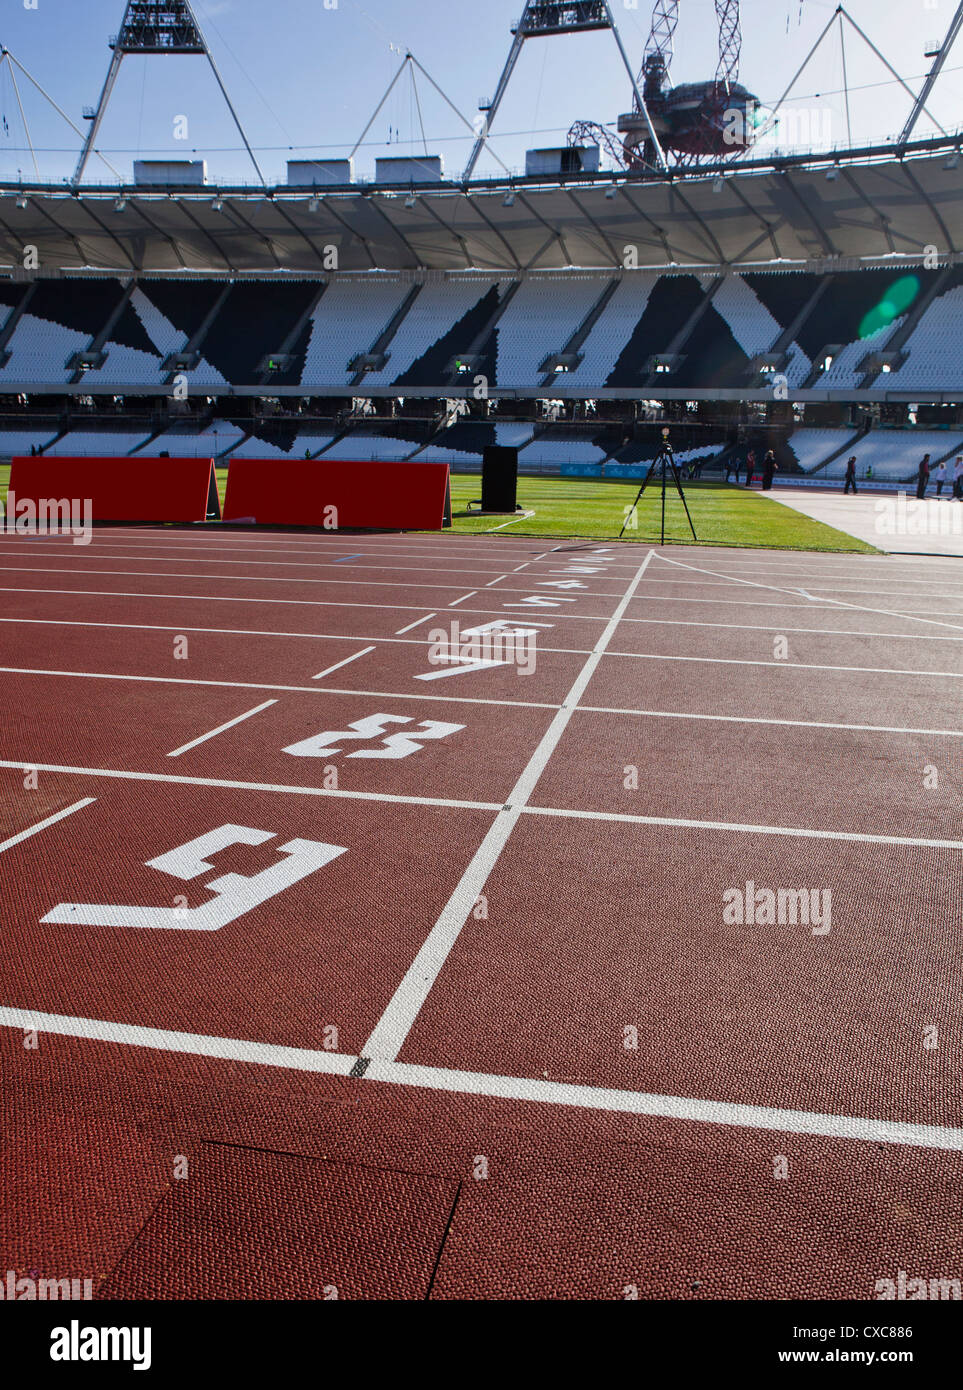 Die Ziellinie der Athletics track in The Olympic Stadium, London, England, Vereinigtes Königreich, Europa Stockbild